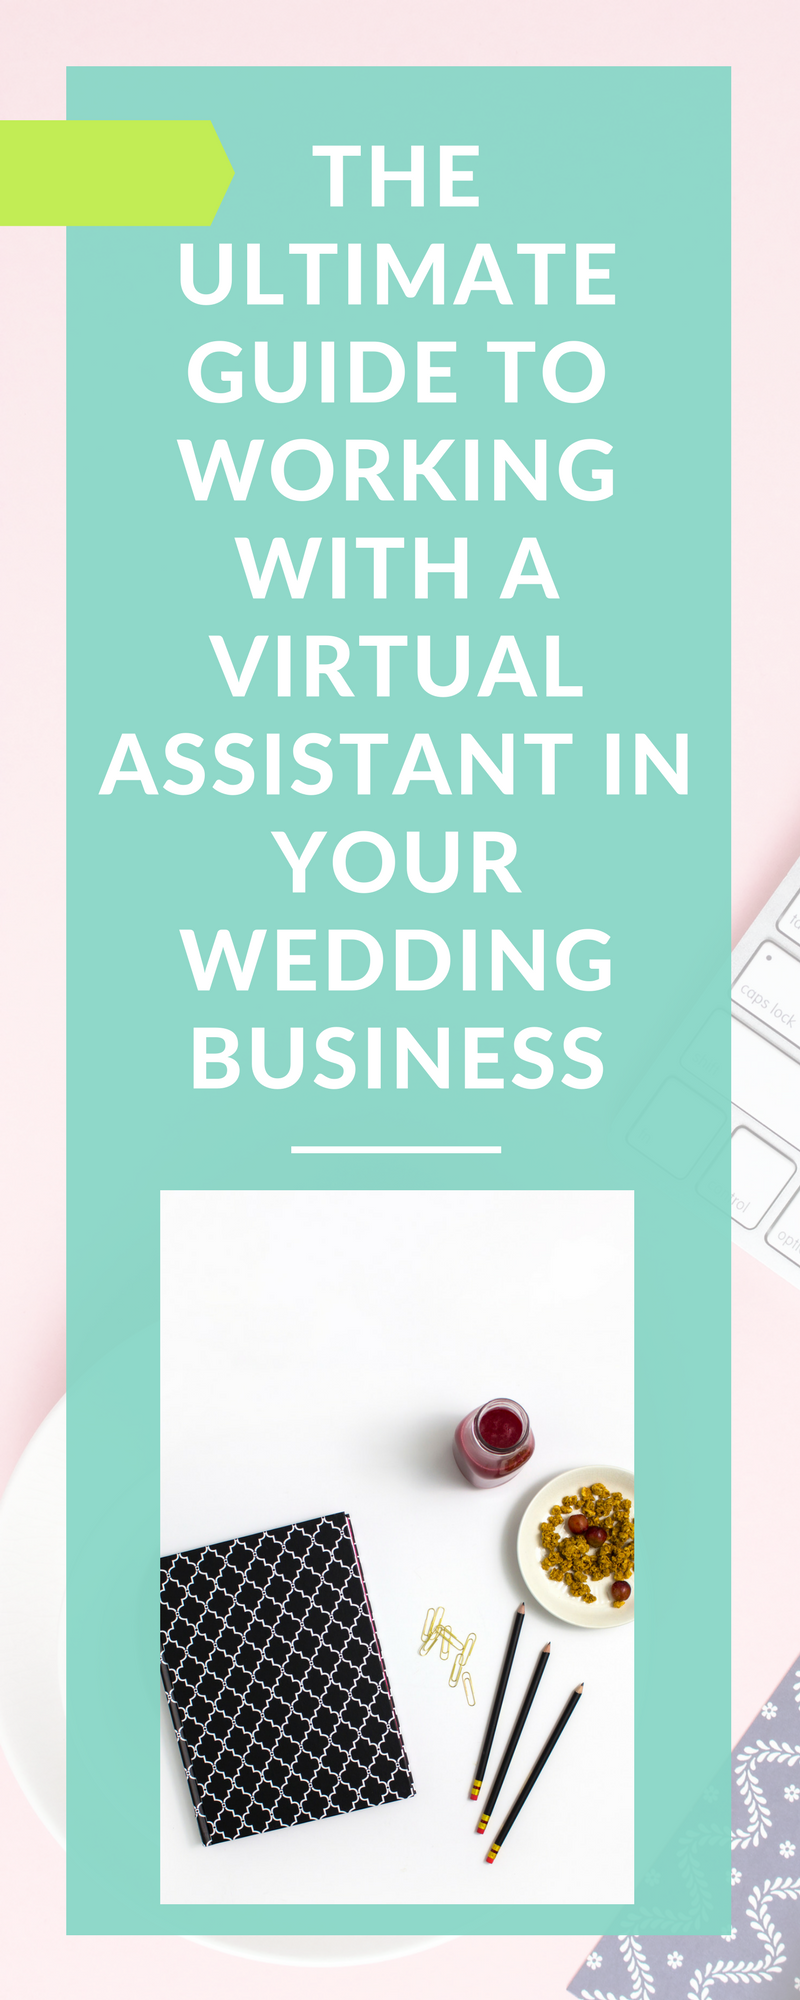 An ultimate guide to working with a virtual assistant in your wedding business. This is perfect for wedding photographers, planners, florists, videographers, DJs, officiants, and wedding venues, among other vendors. Never have to worry about your social media or email again!